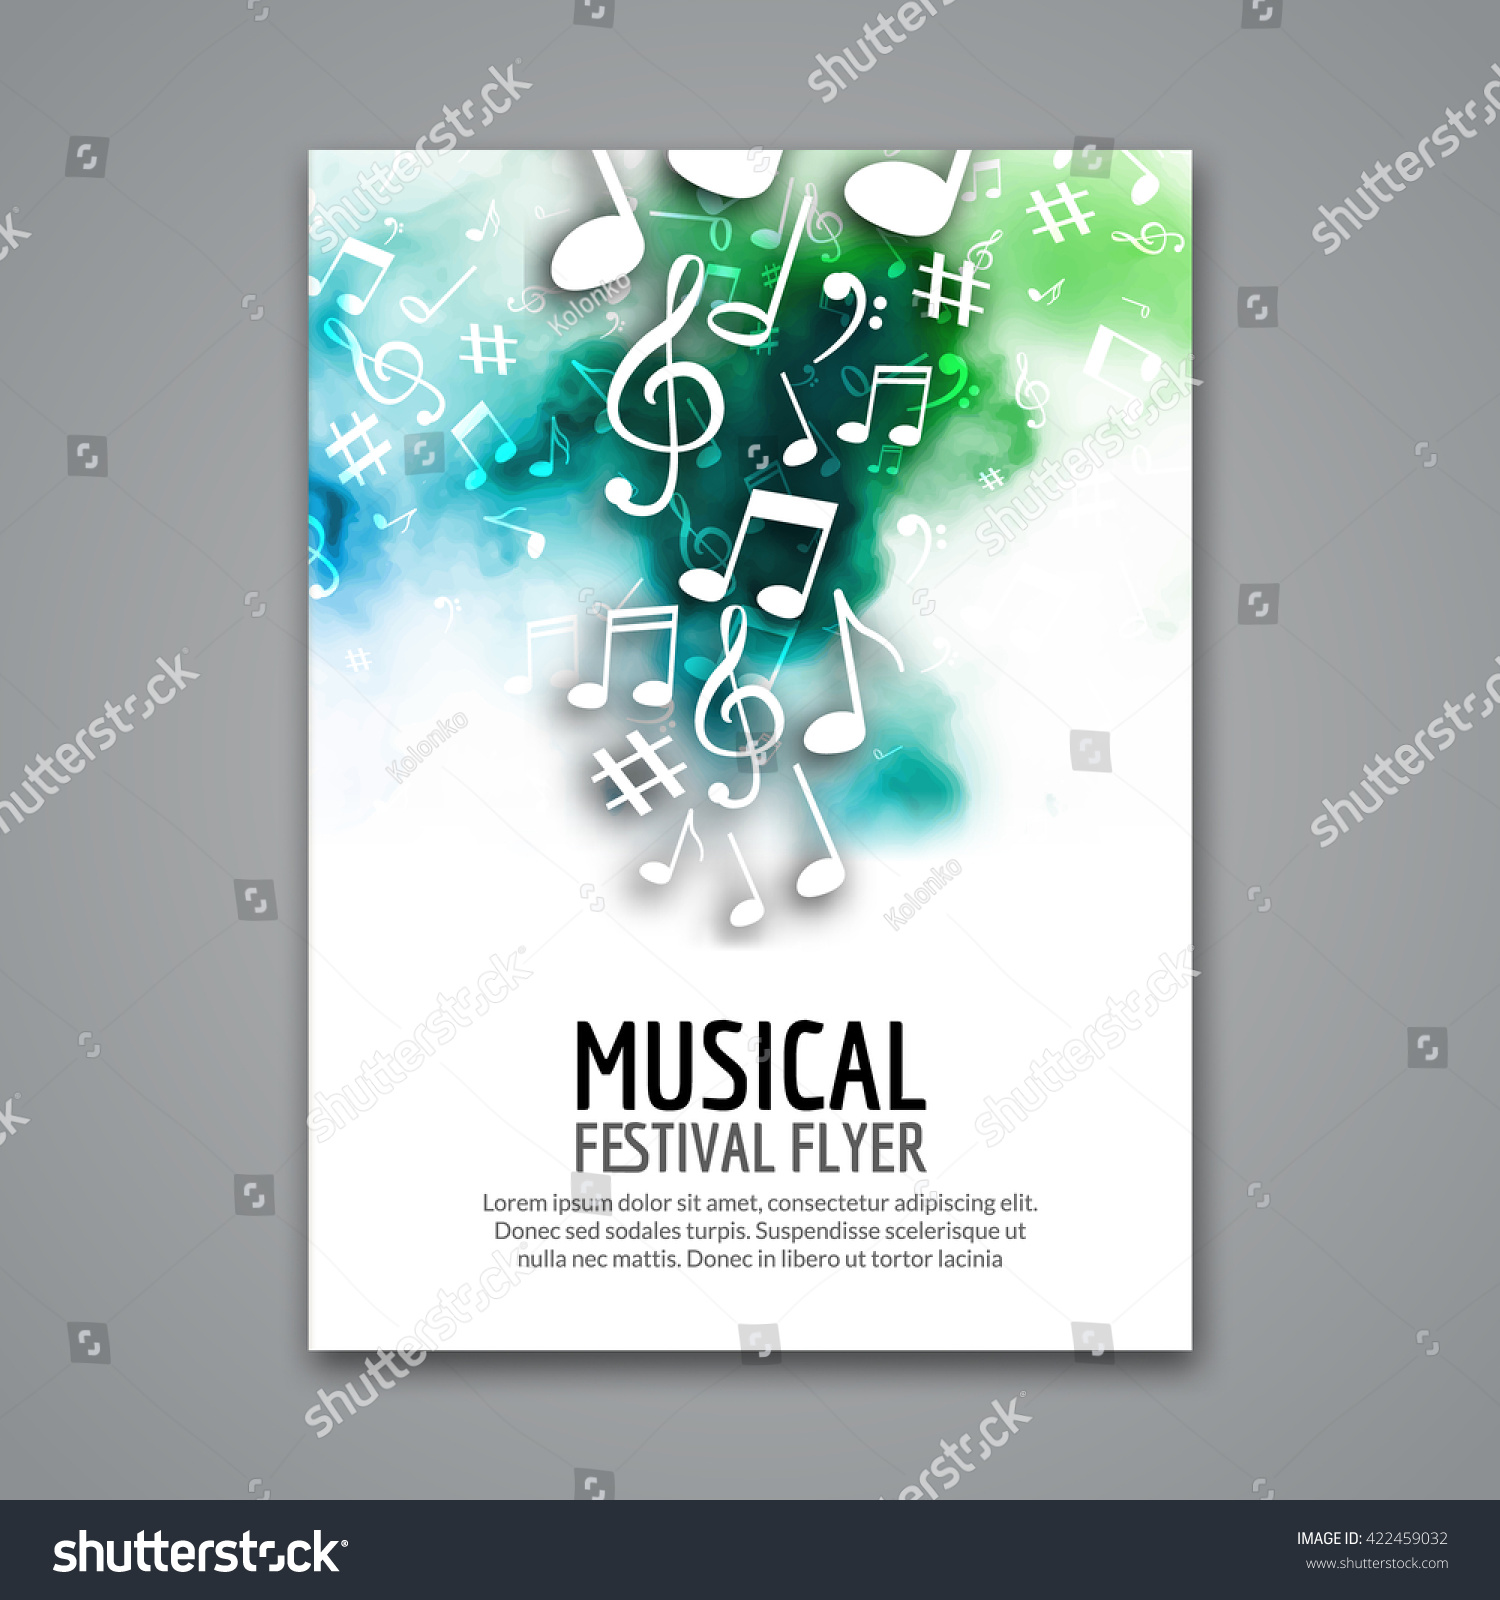 Poster design notes - Colorful Vector Music Festival Concert Template Flyer Musical Flyer Design Poster With Notes